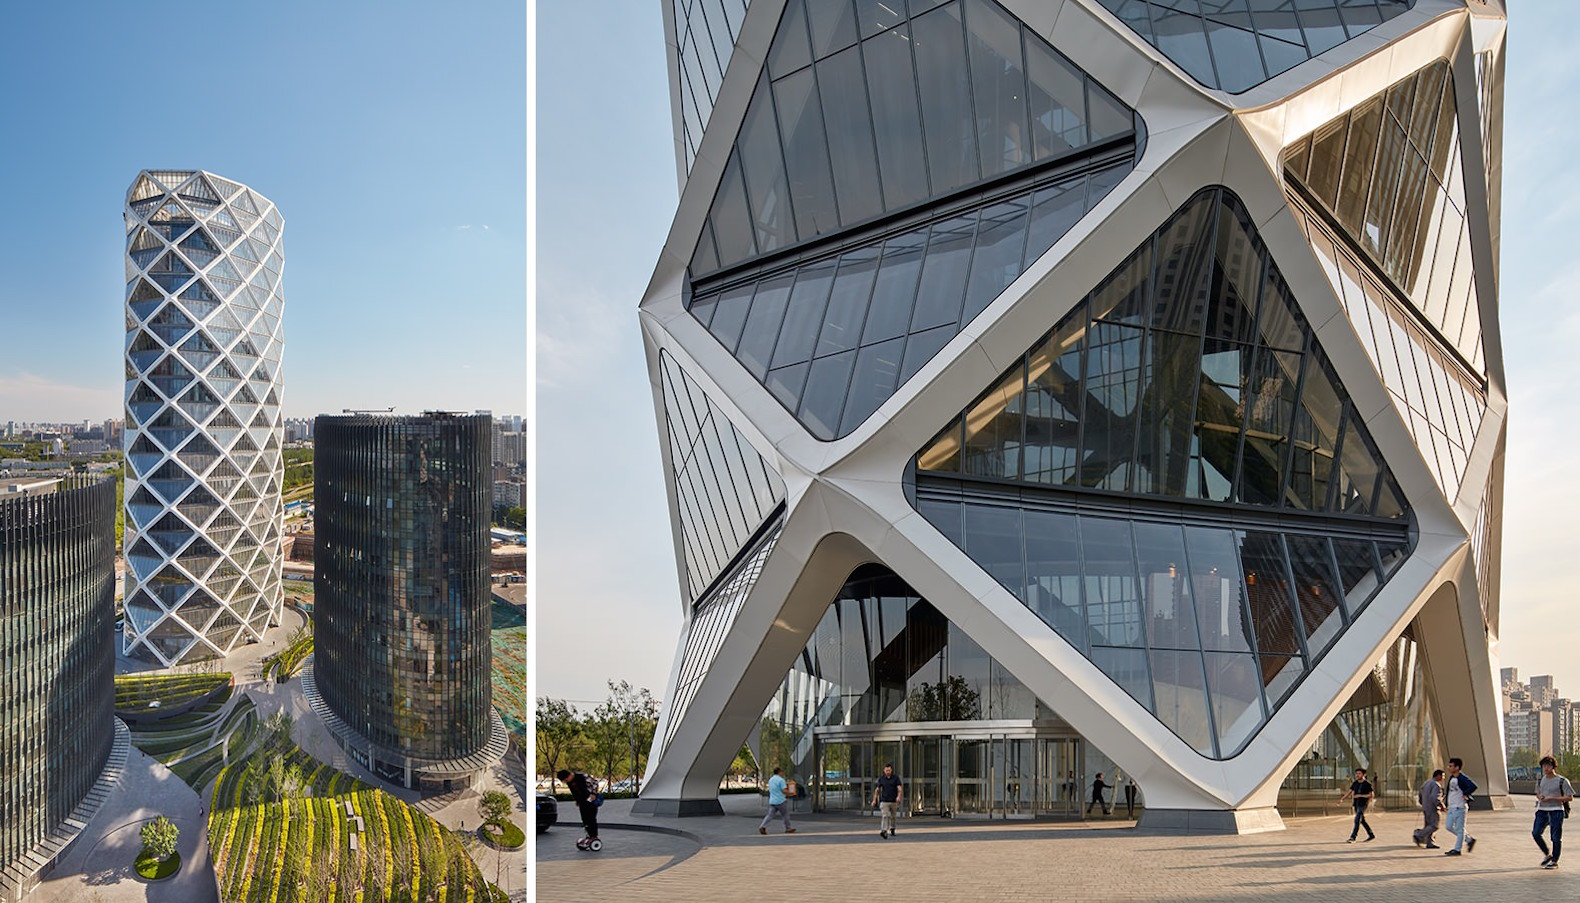 SOM's diagrid glass tower rises like a Chinese paper lantern in Beijing